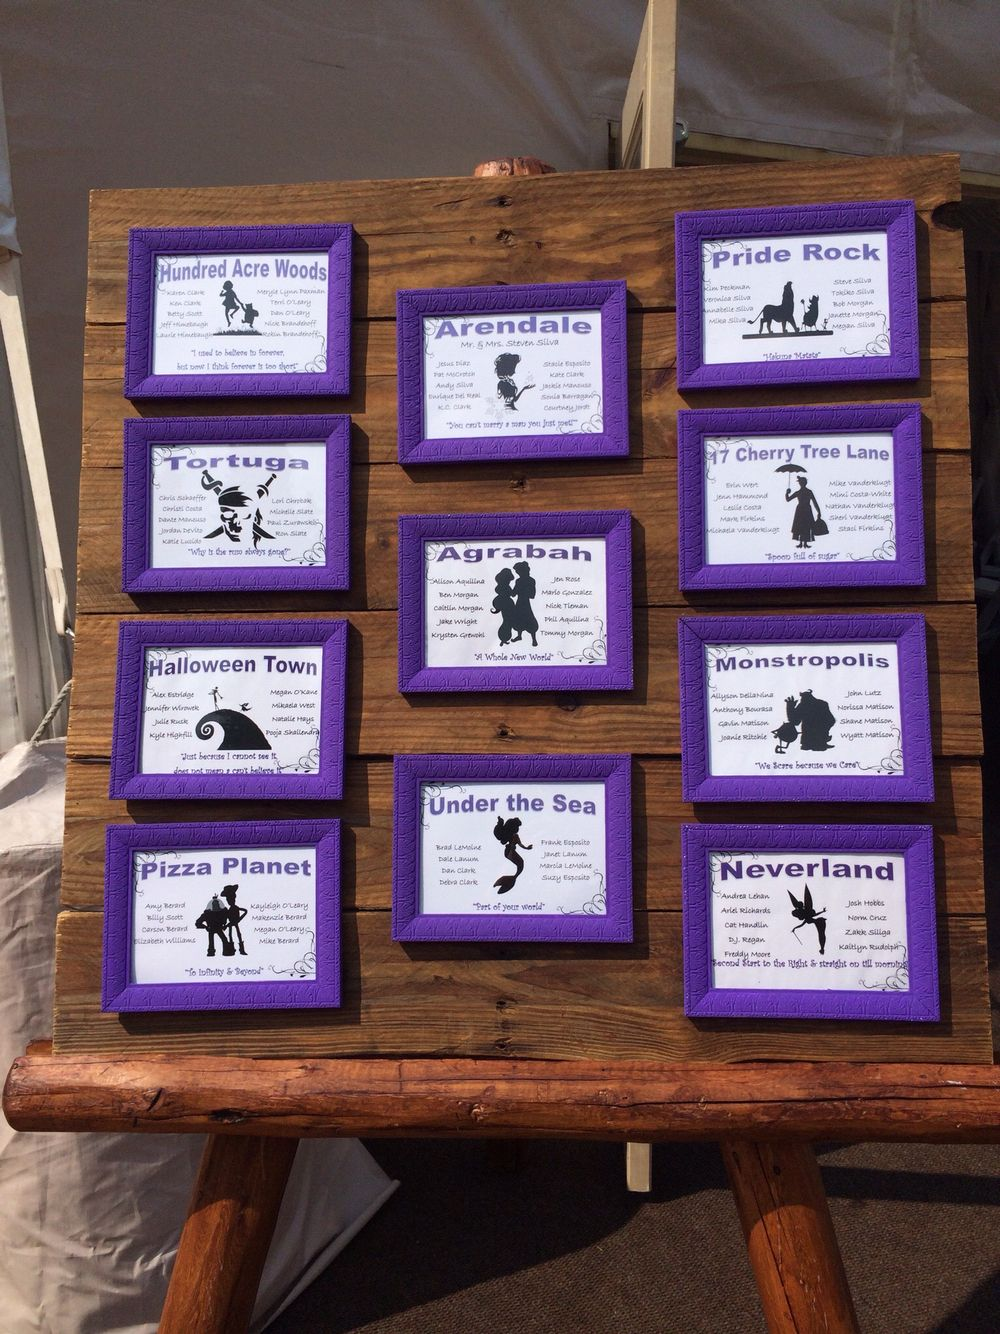 Our wedding seating chart with a touch of Disney! … | wedding …